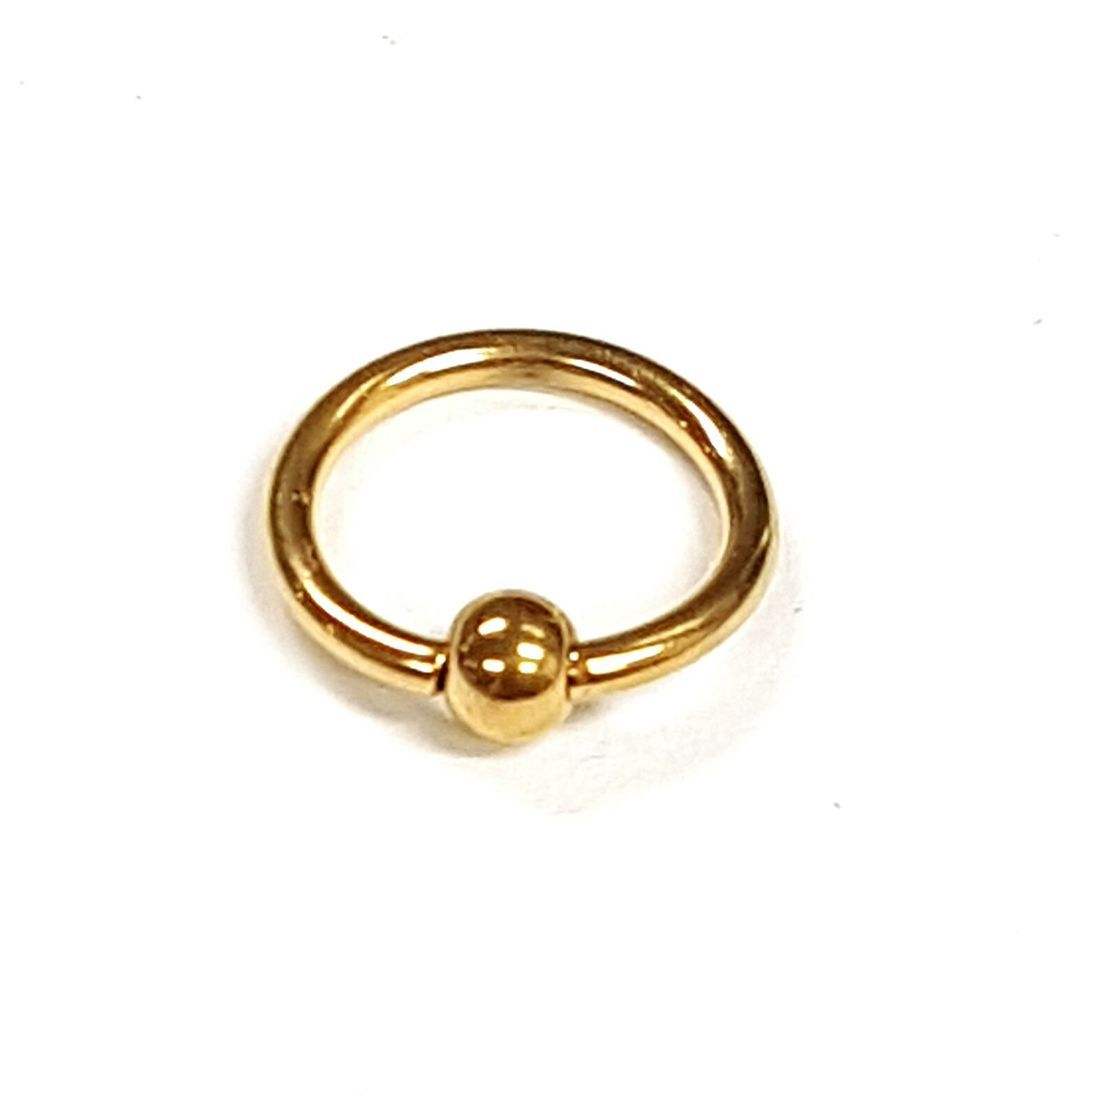 1.2mm x 8mm Gold Ball Closure Ring    available at Kazbah online and our Leicester City Centre Shop